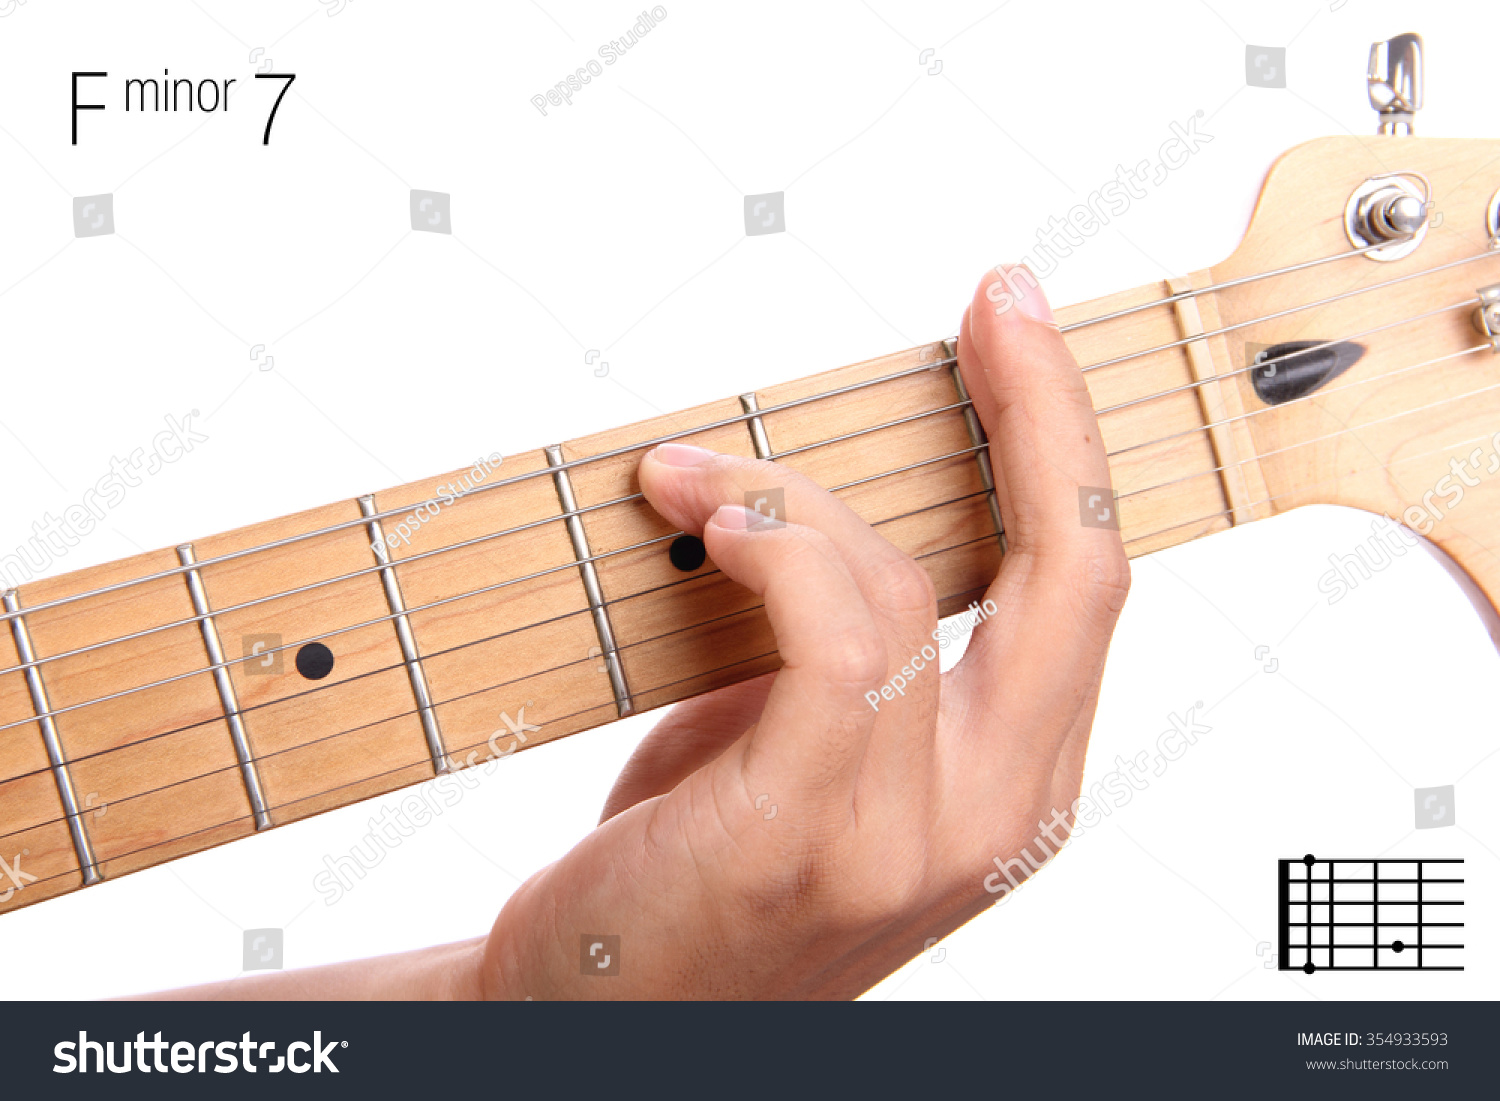 Fm7 minor seventh keys guitar tutorial stock photo 354933593 fm7 minor seventh keys guitar tutorial series closeup of hand playing f minor seventh hexwebz Choice Image